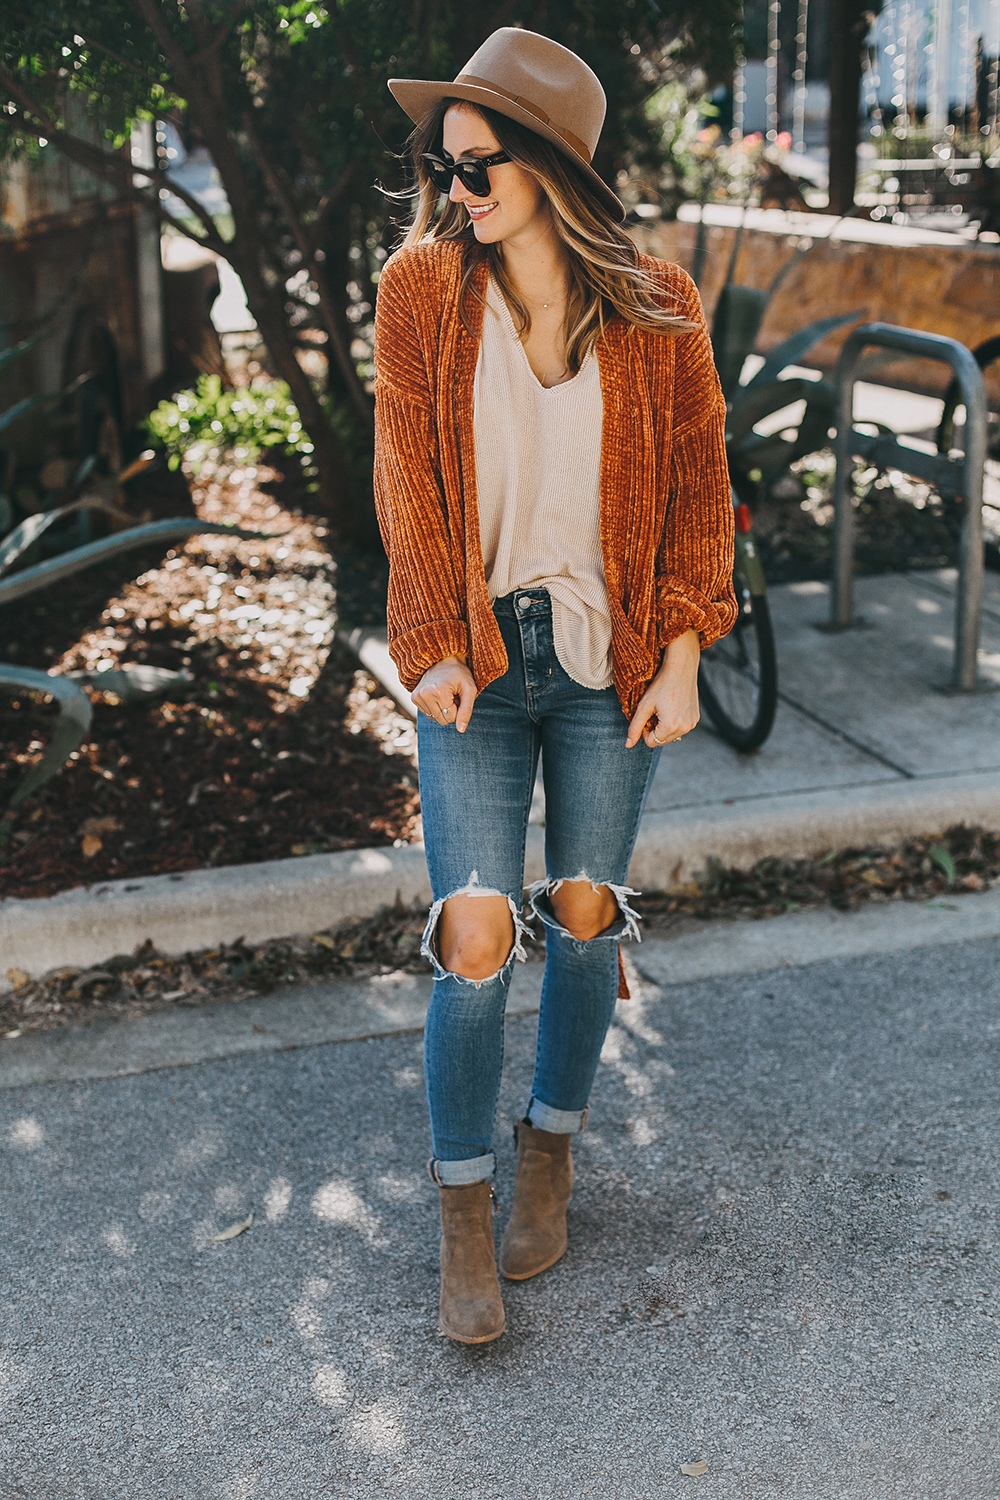 livvyland-blog-olivia-watson-austin-texas-fashion-blogger-burnt-orange-chenille-cardigan-urban-outfitters-1-2